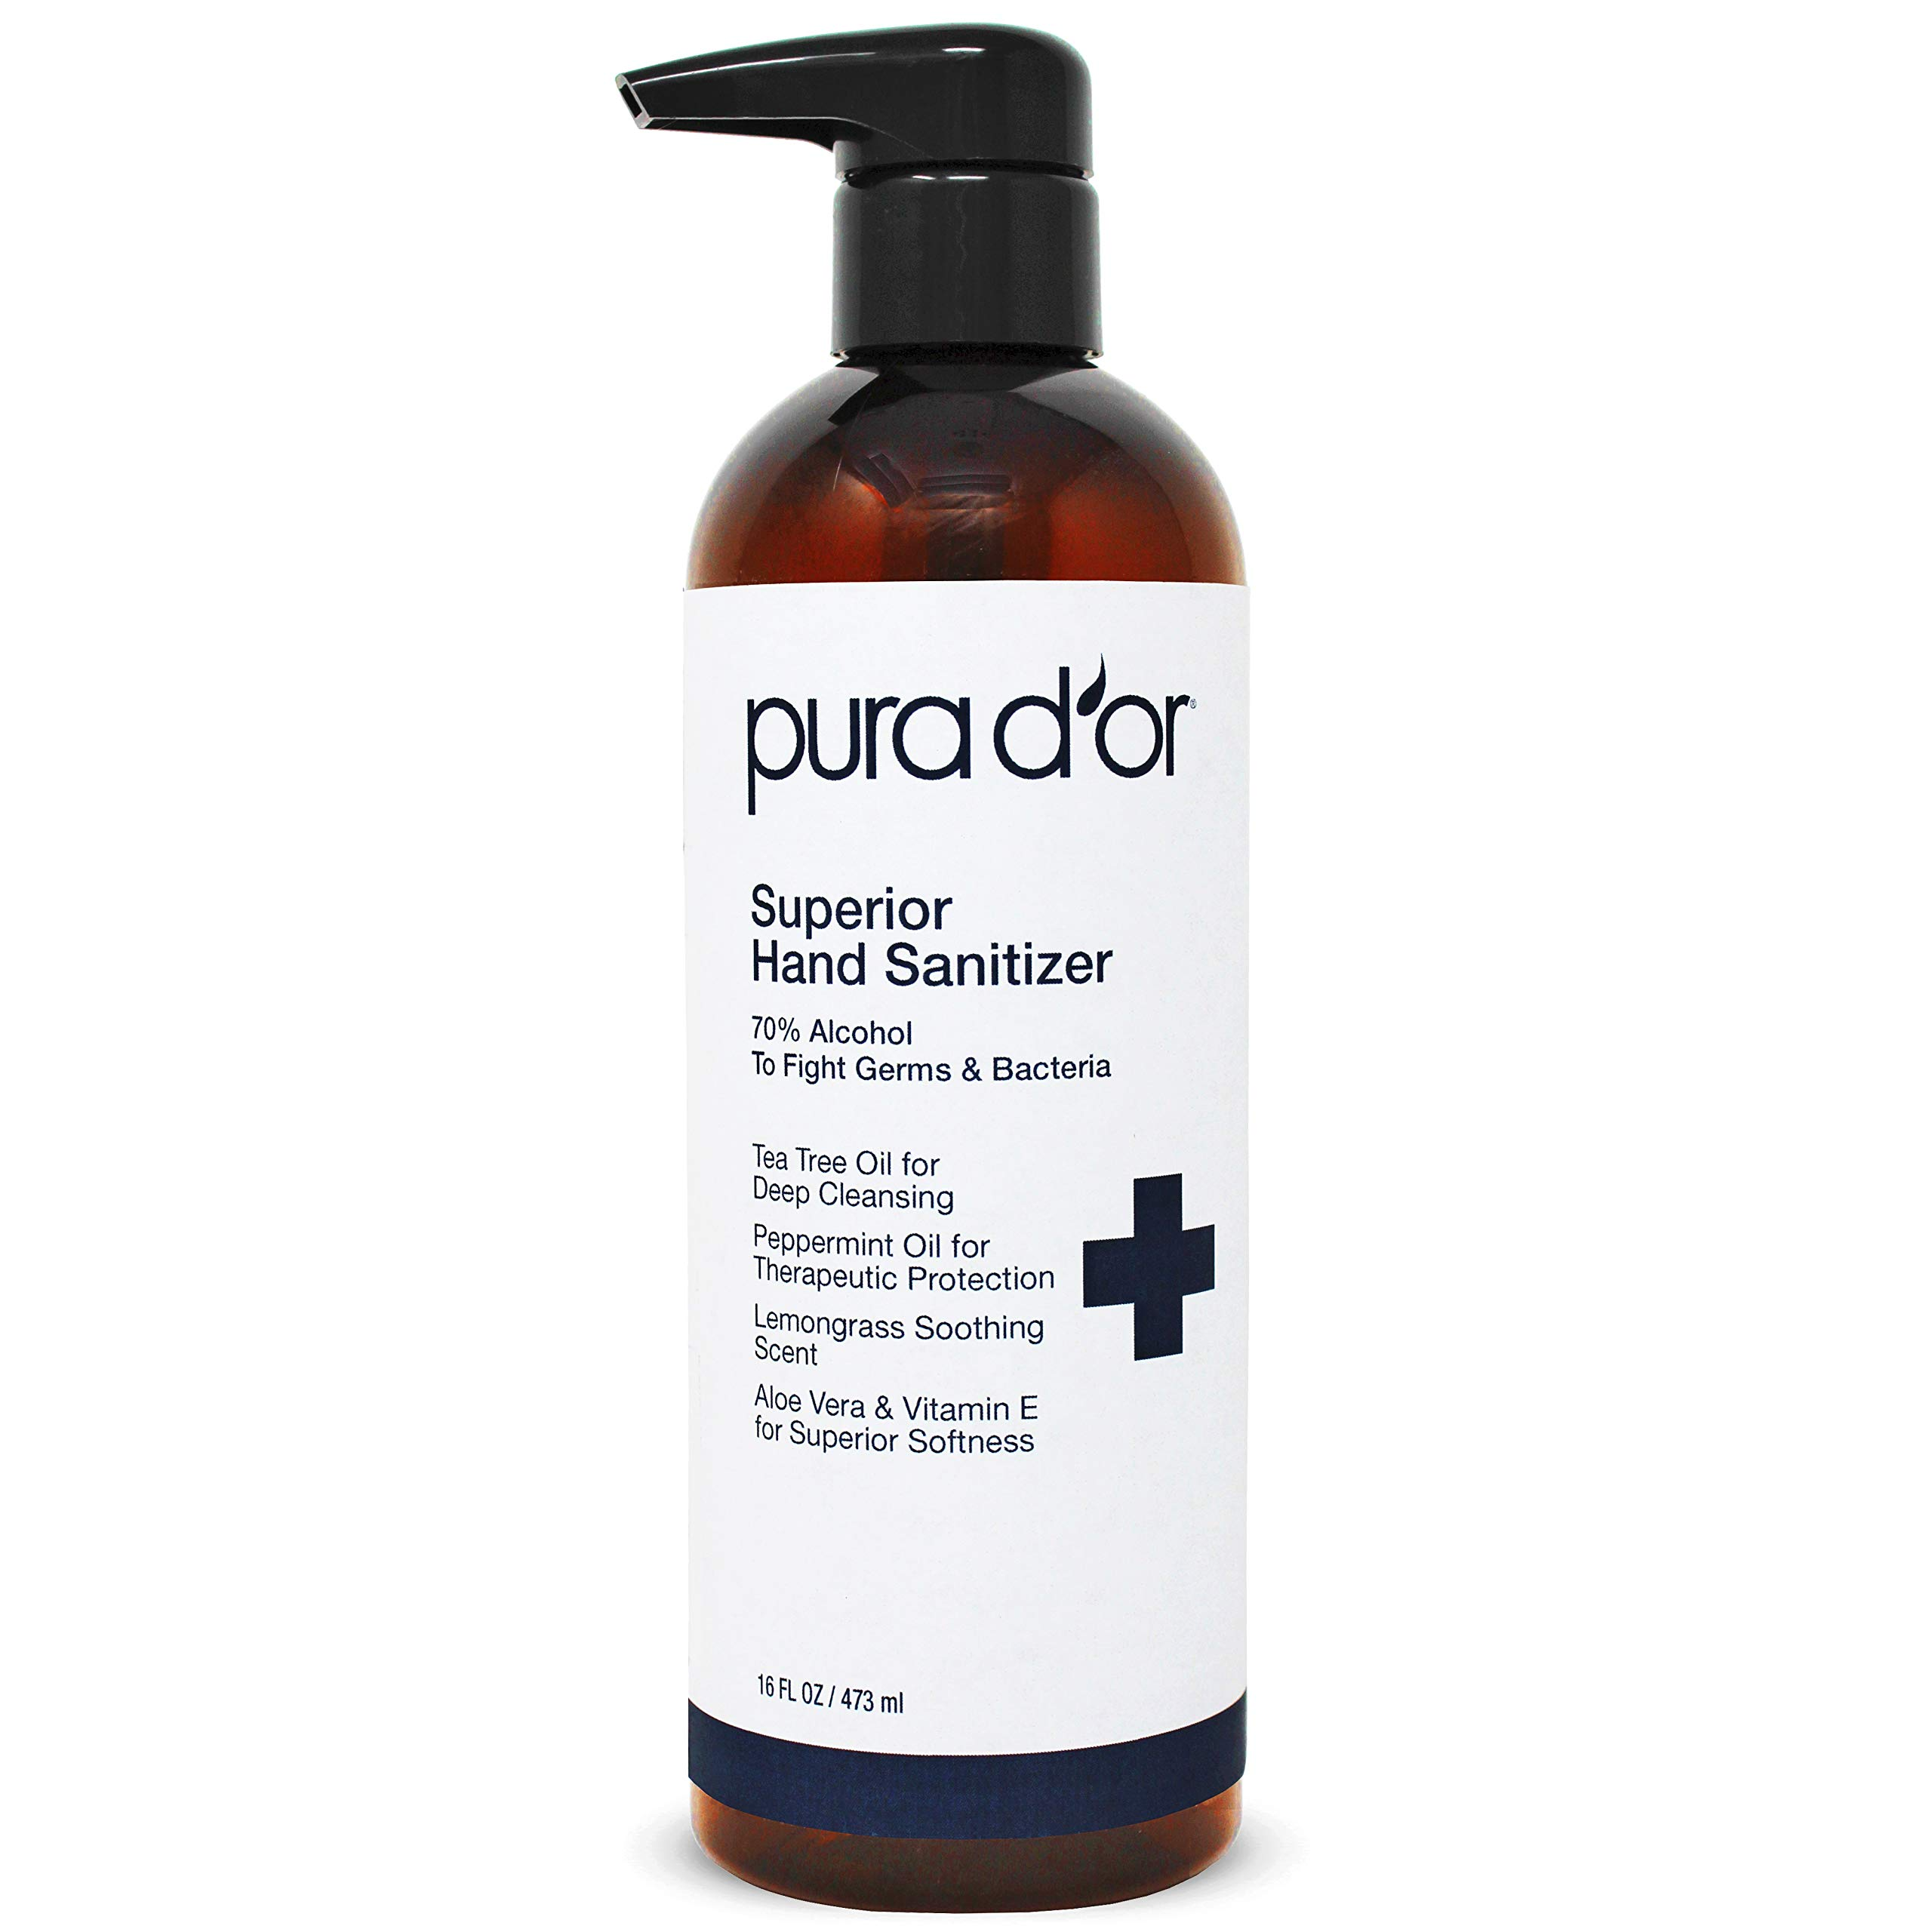 PURA D'OR Hand Sanitizer Gel LEMONGRASS Scent (16oz) 70% Alcohol Kills 99% Germs w/Aloe Vera, Tea Tree: Waterless Deep Cleansing Moisturizing Formula Soothes, Fights Germs & Bacteria